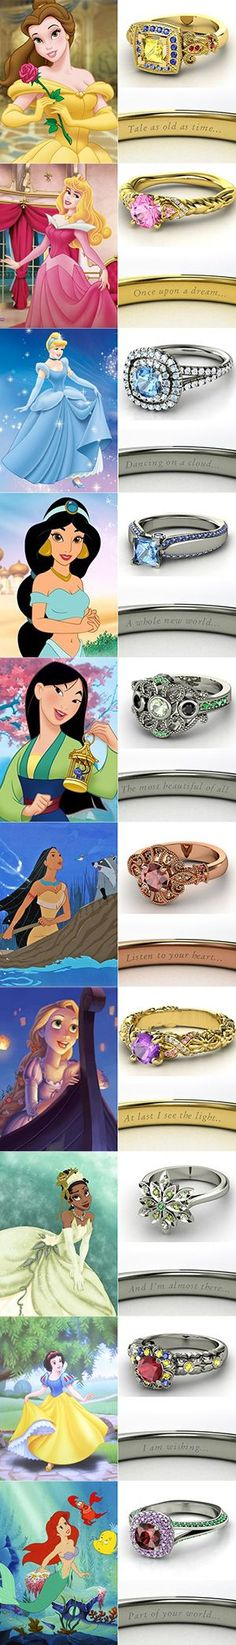 Cinderella's ring sorta looks like my wedding ring! *Lg